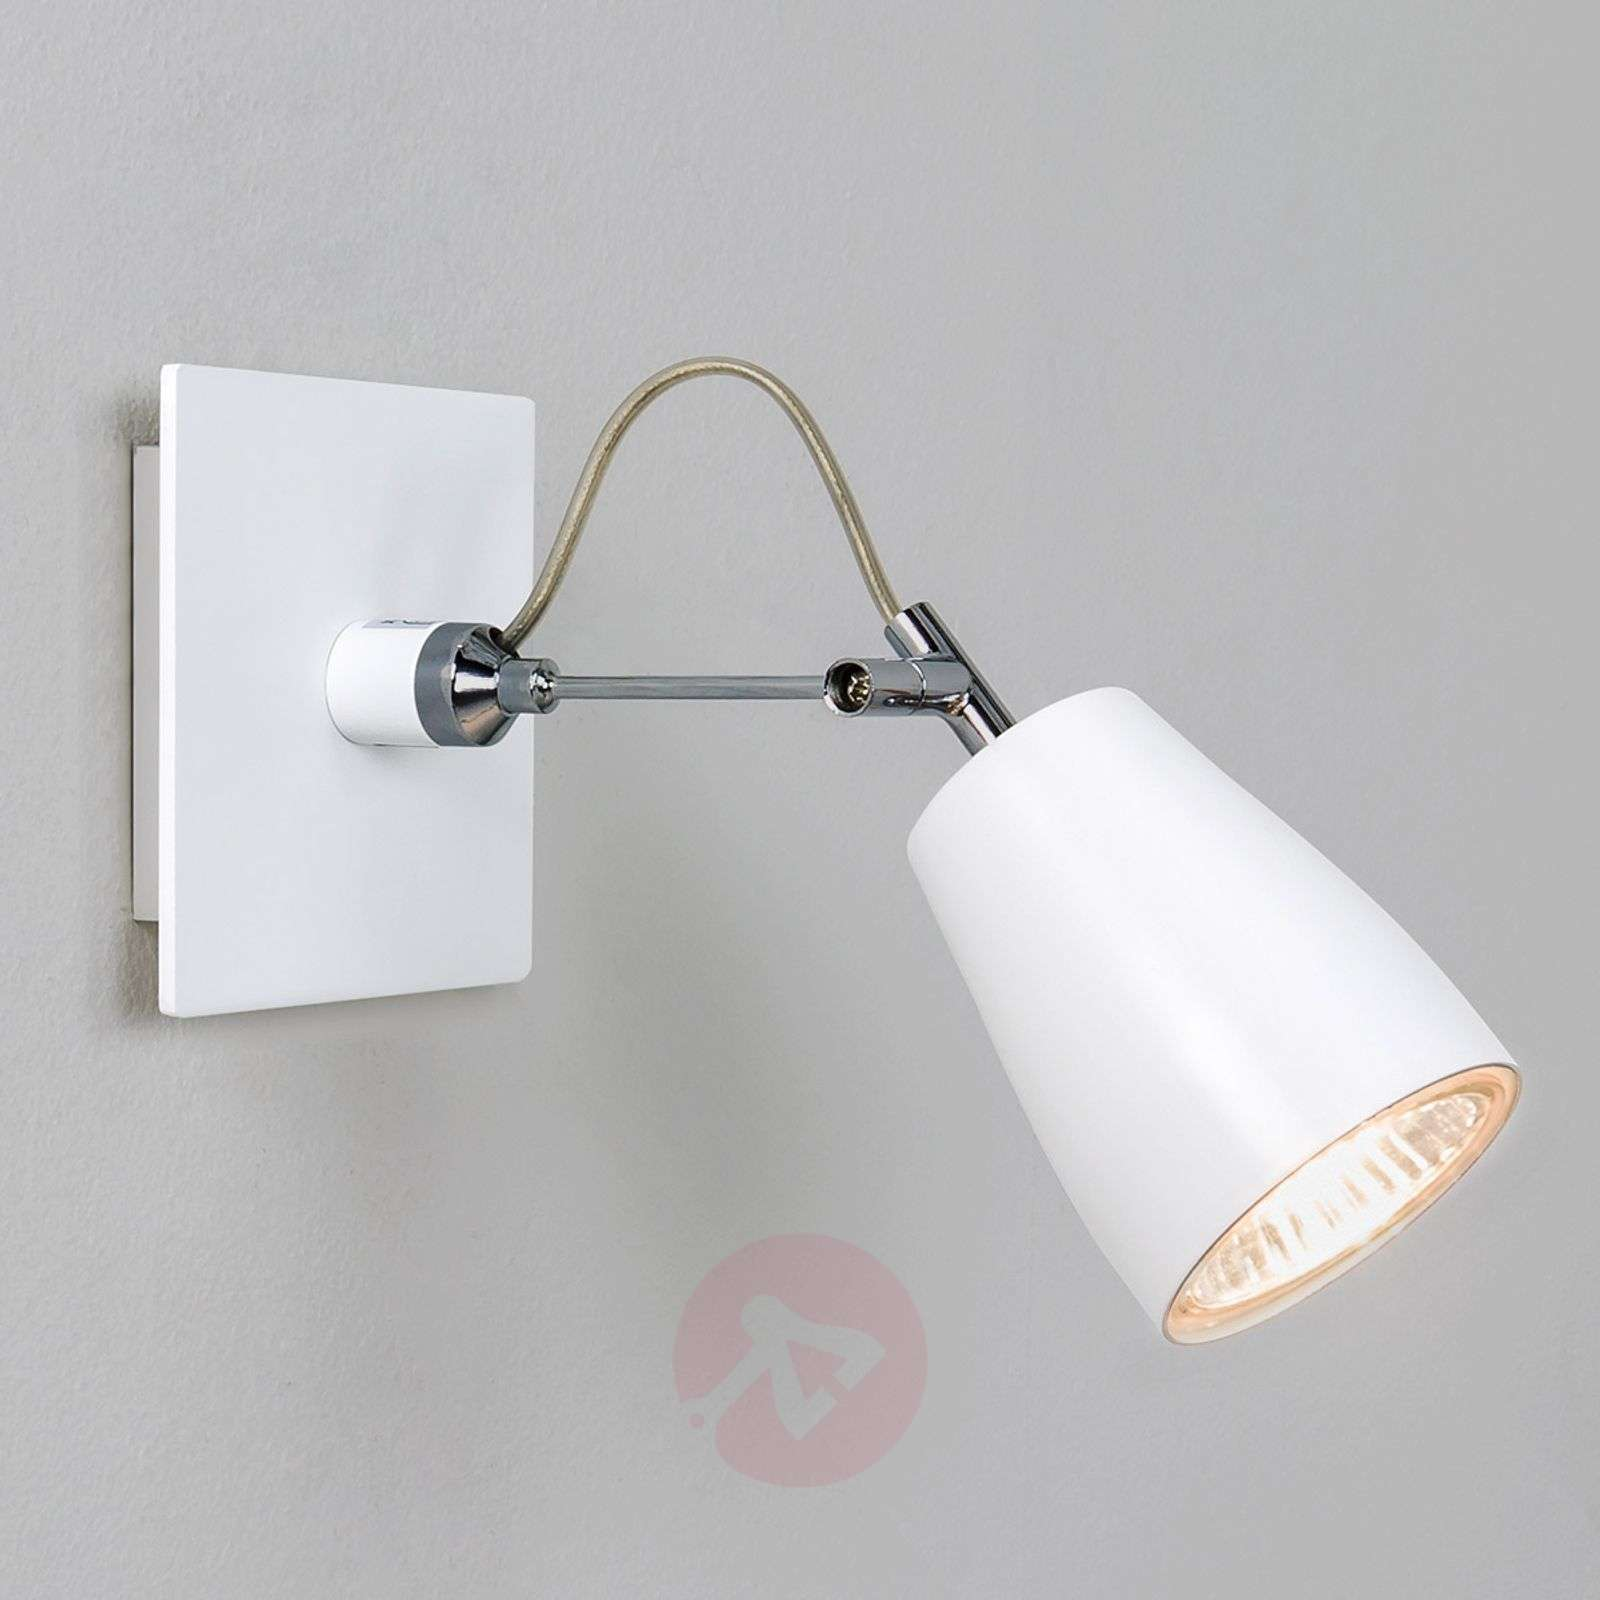 Polar Ceiling Spotlight Decorative-1020262-02